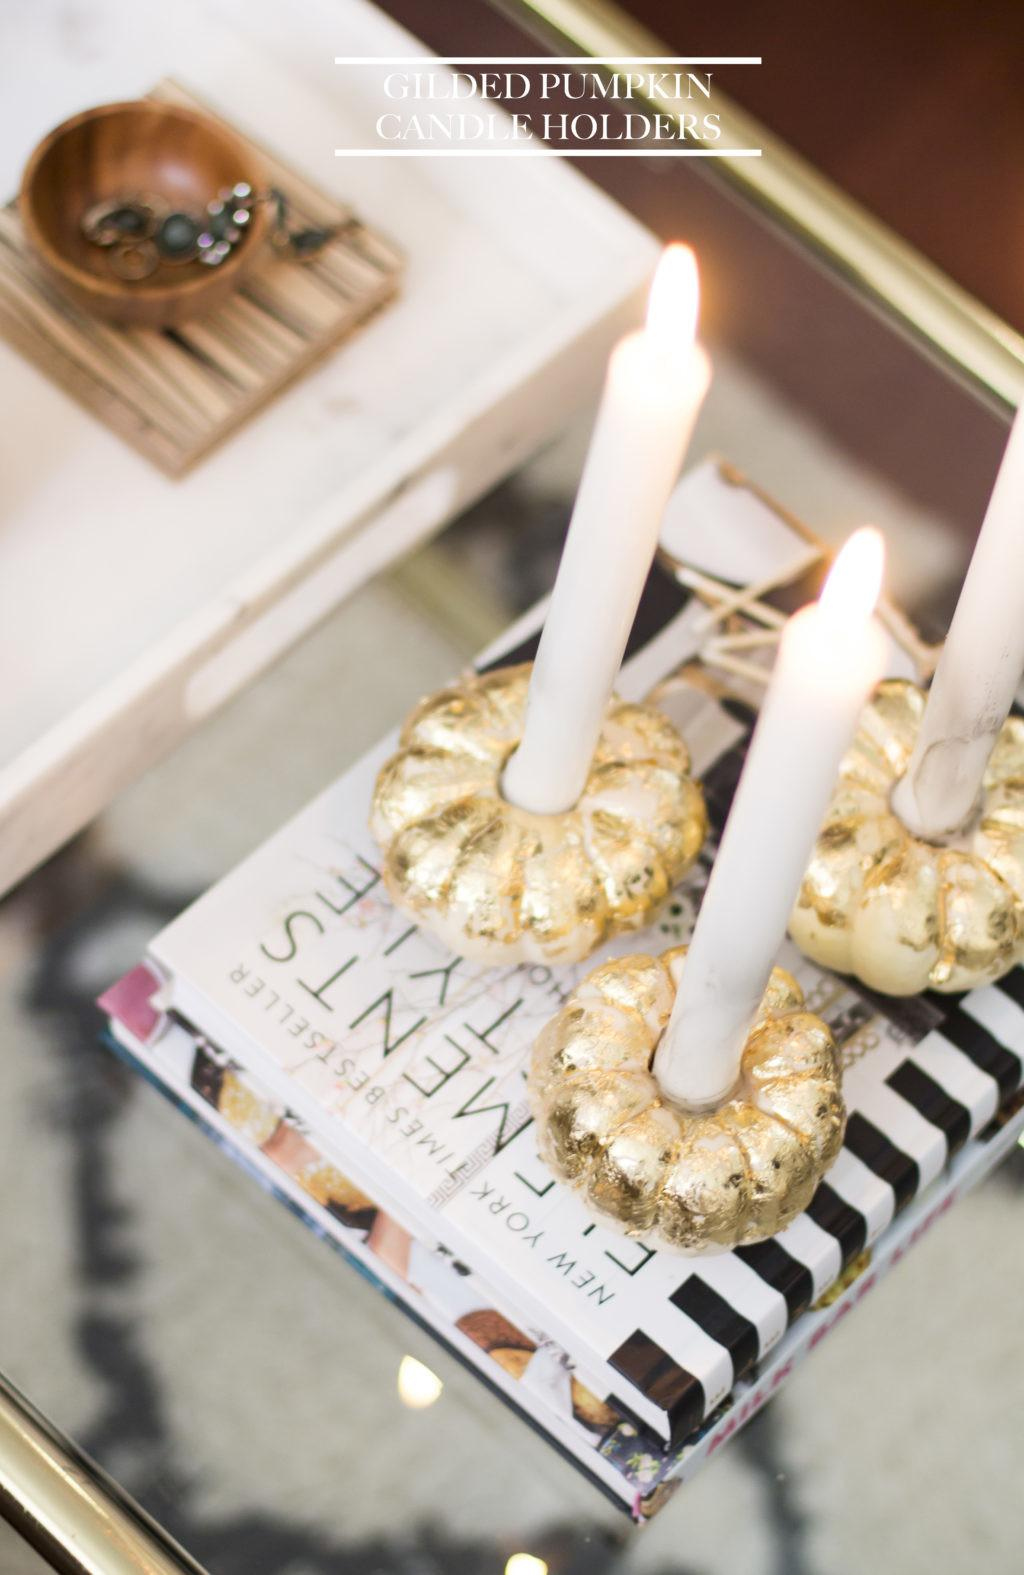 Thanksgiving Diy Idea Gilded Pumpkin Candle Holders